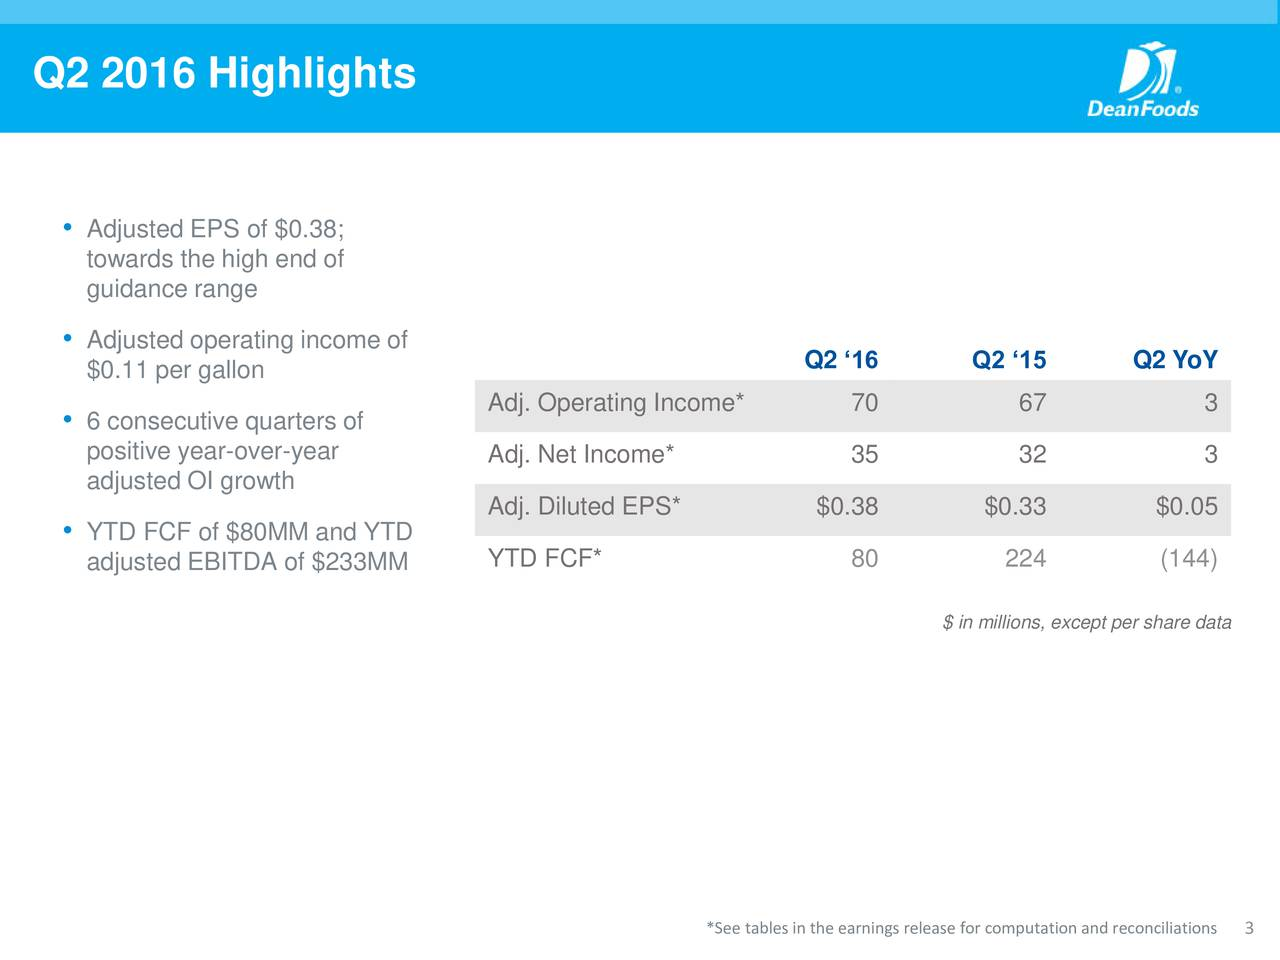 Adjusted EPS of $0.38; towards the high end of guidance range Adjusted operating income of $0.11 per gallon Q2 16 Q2 15 Q2 YoY Adj. Operating Income* 70 67 3 6 consecutive quarters of positive year-over-year Adj. Net Income* 35 32 3 adjusted OI growth Adj. Diluted EPS* $0.38 $0.33 $0.05 YTD FCF of $80MM and YTD YTD FCF* 80 224 (144) adjusted EBITDA of $233MM $ in millions, except per share data *See tables in the earnings release for comput3tion and reconciliations